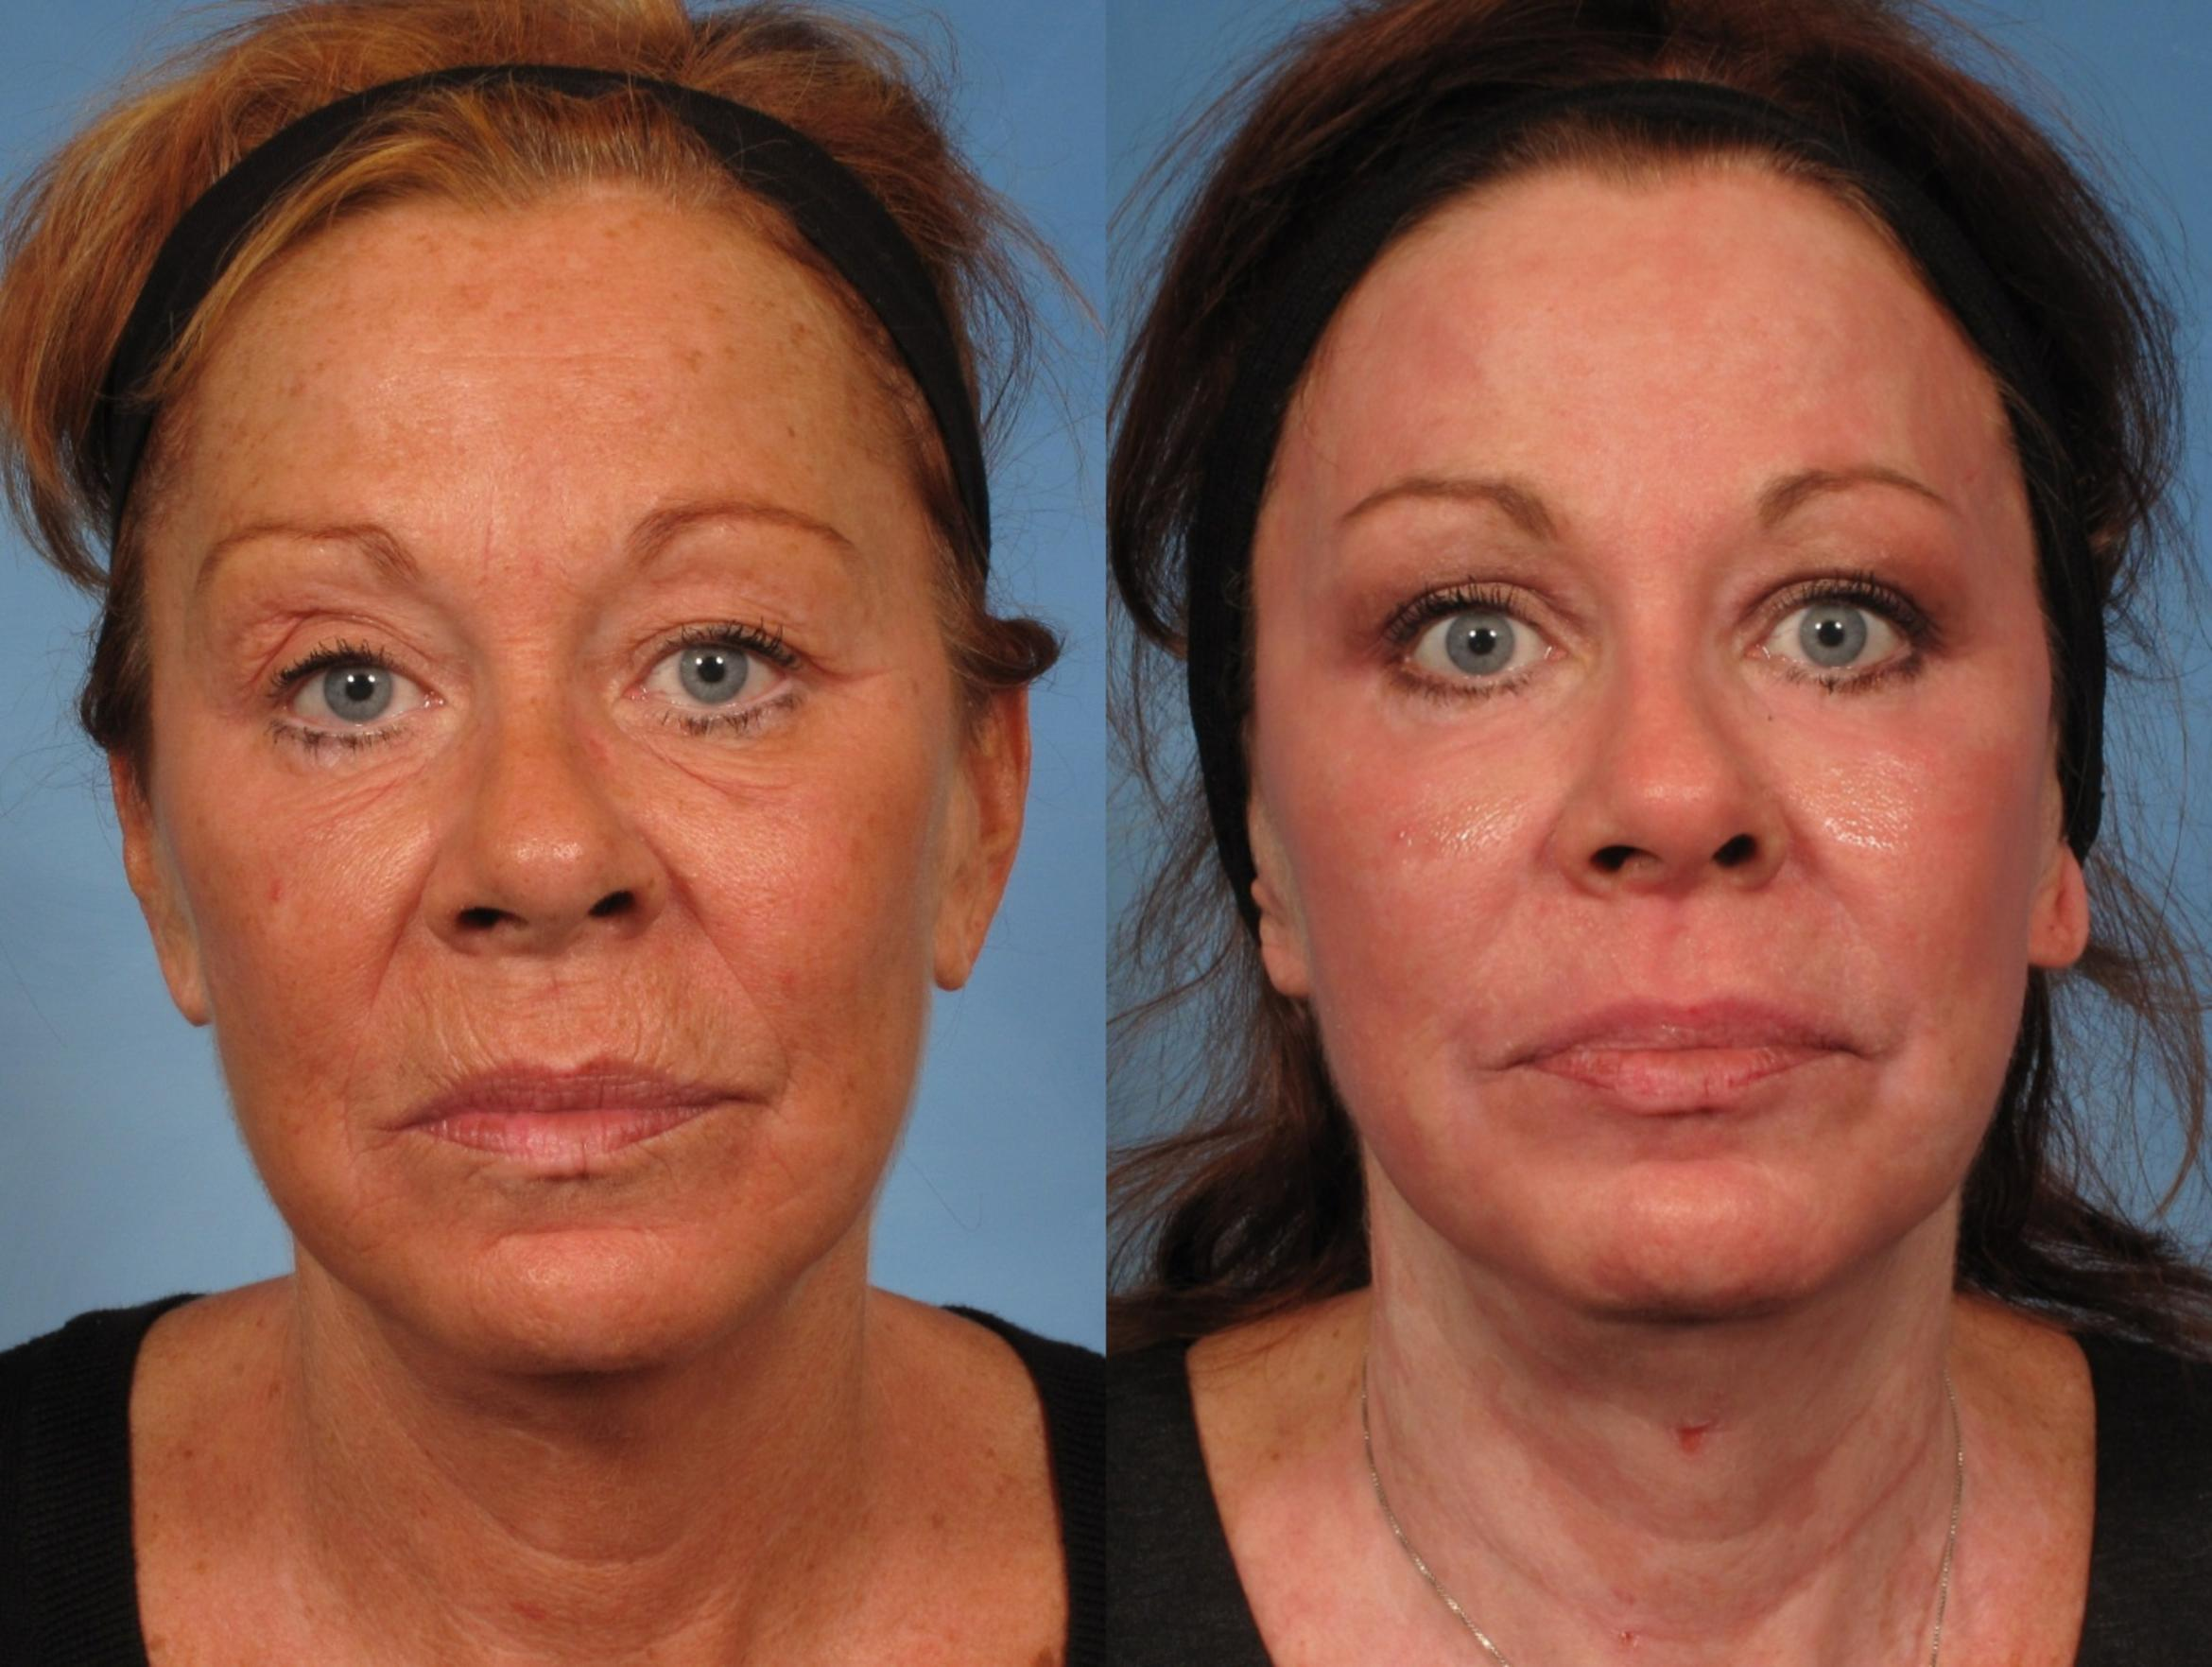 Croton Oil Peel Case 151 Before & After View #1 | Naples, FL | Kent V. Hasen, M.D.